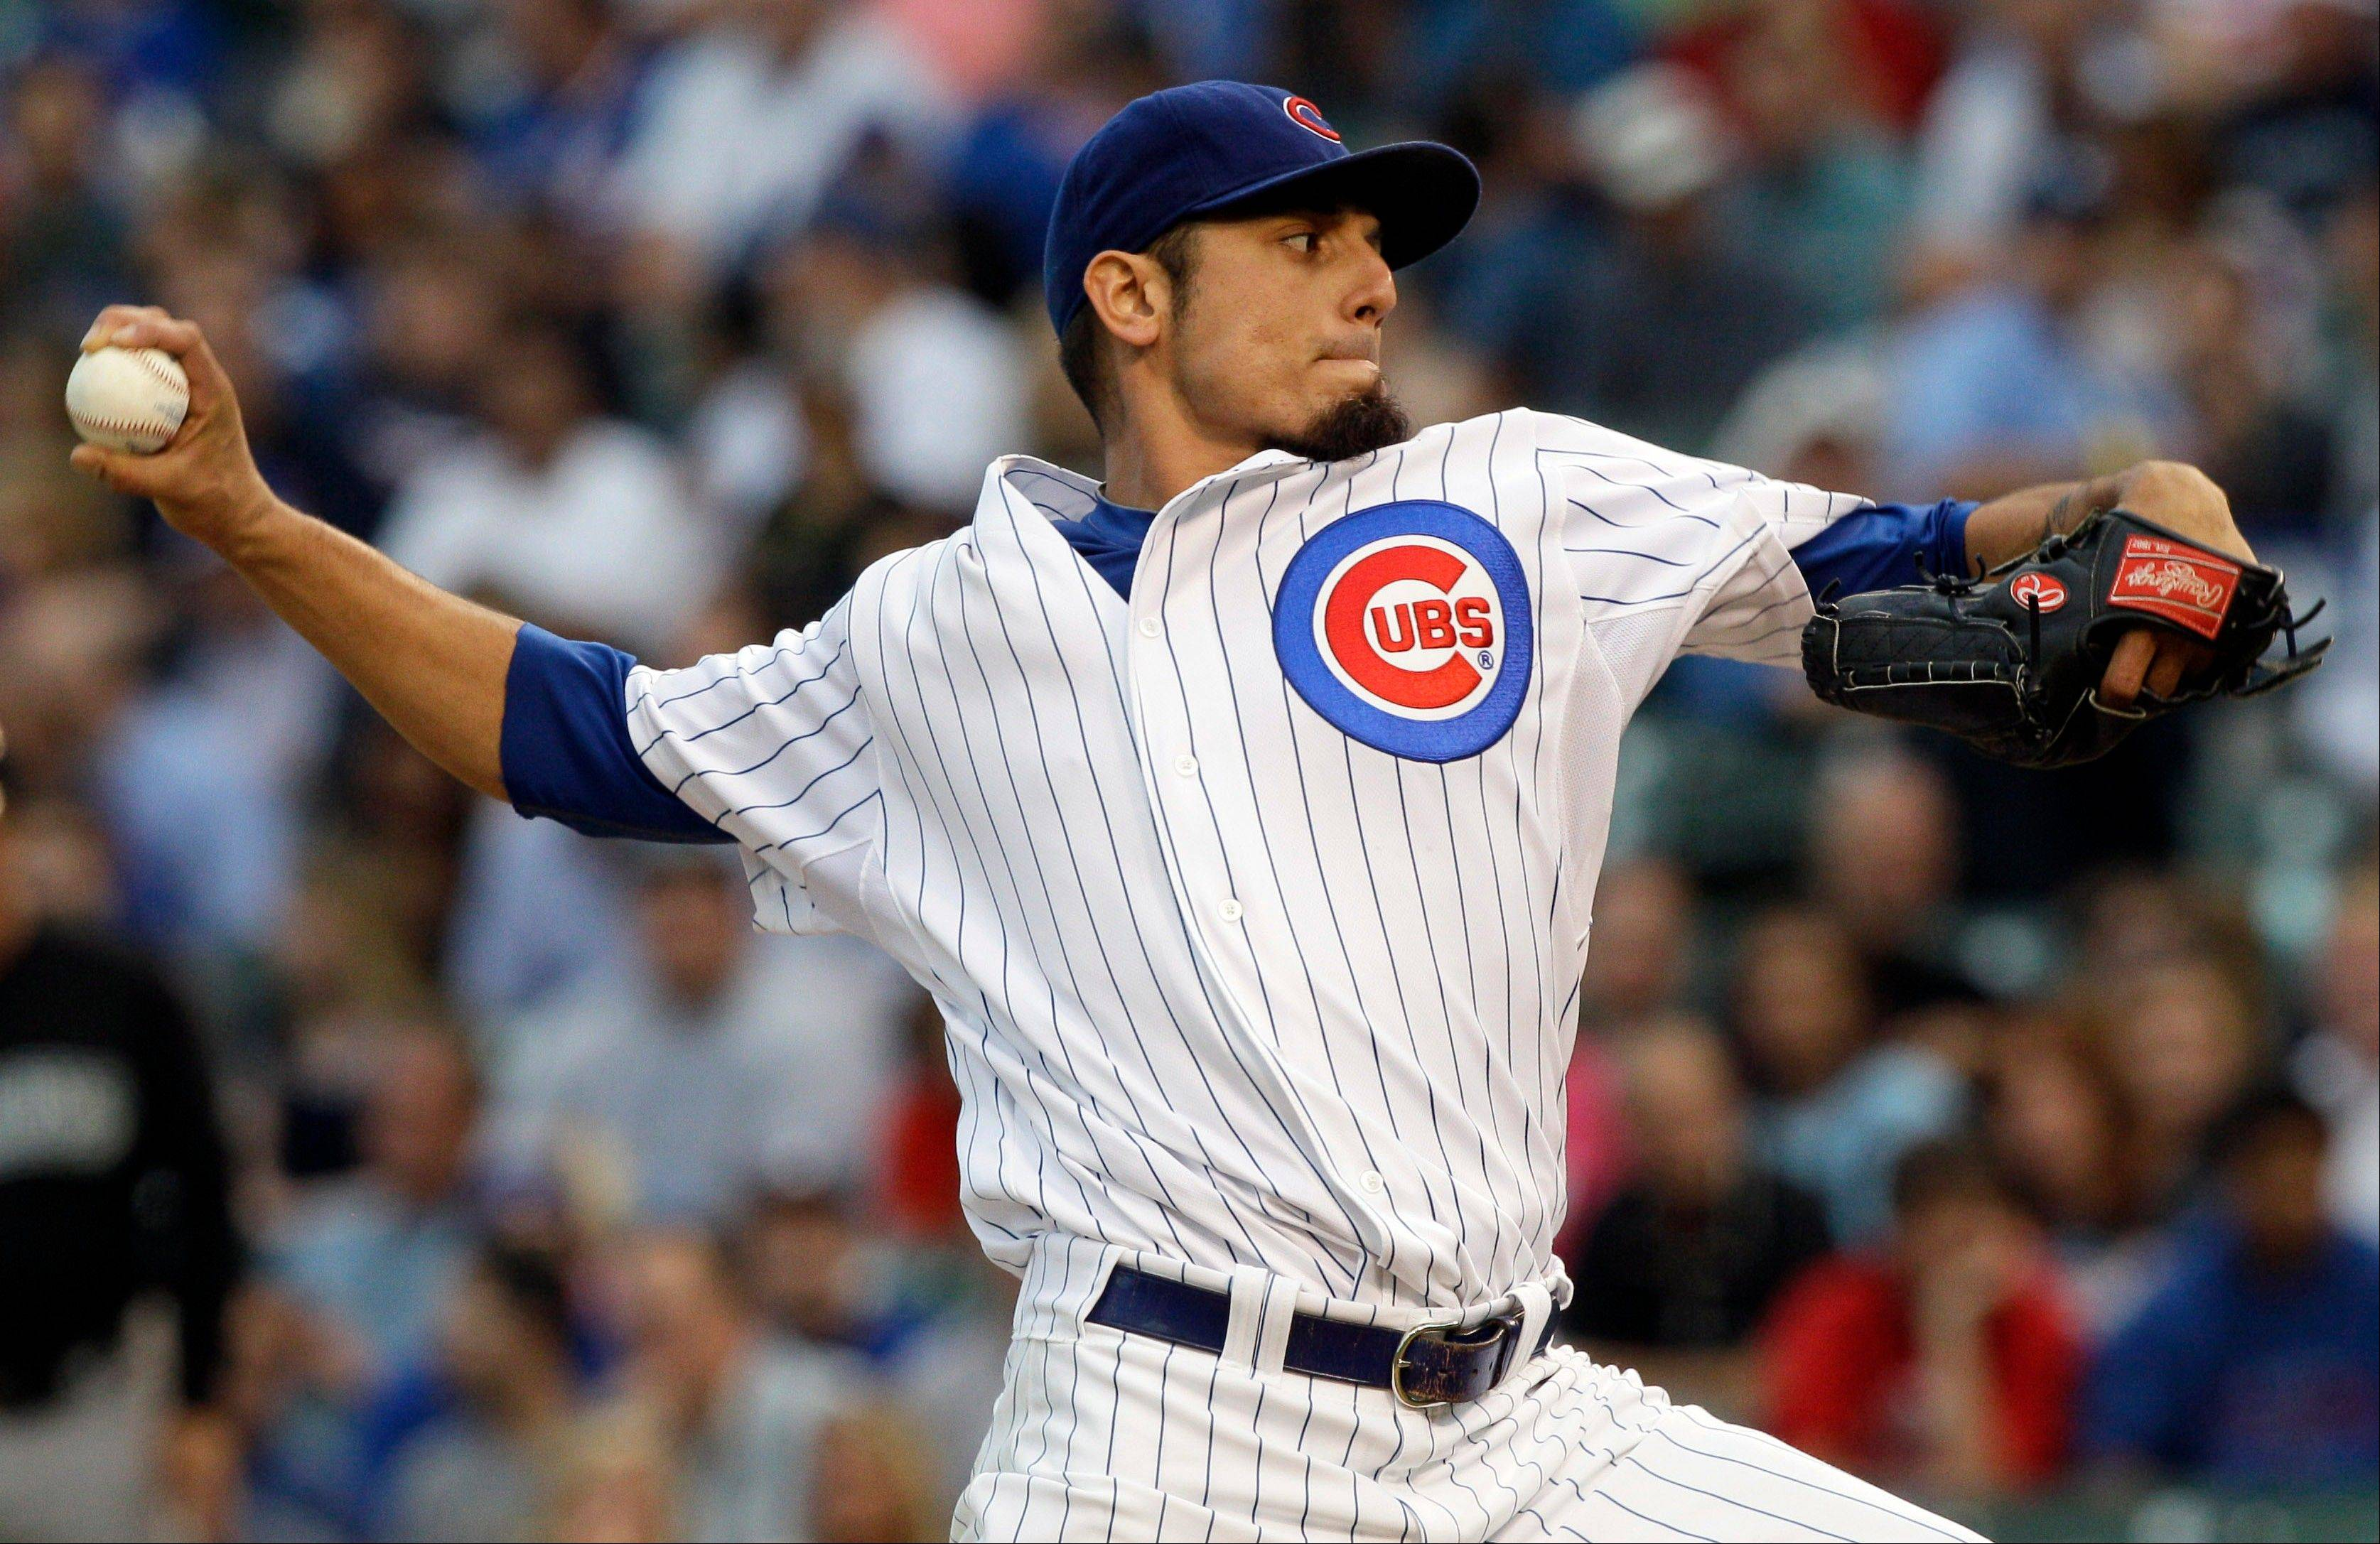 Cubs starter Matt Garza threw seven shutout innings Thursday night.